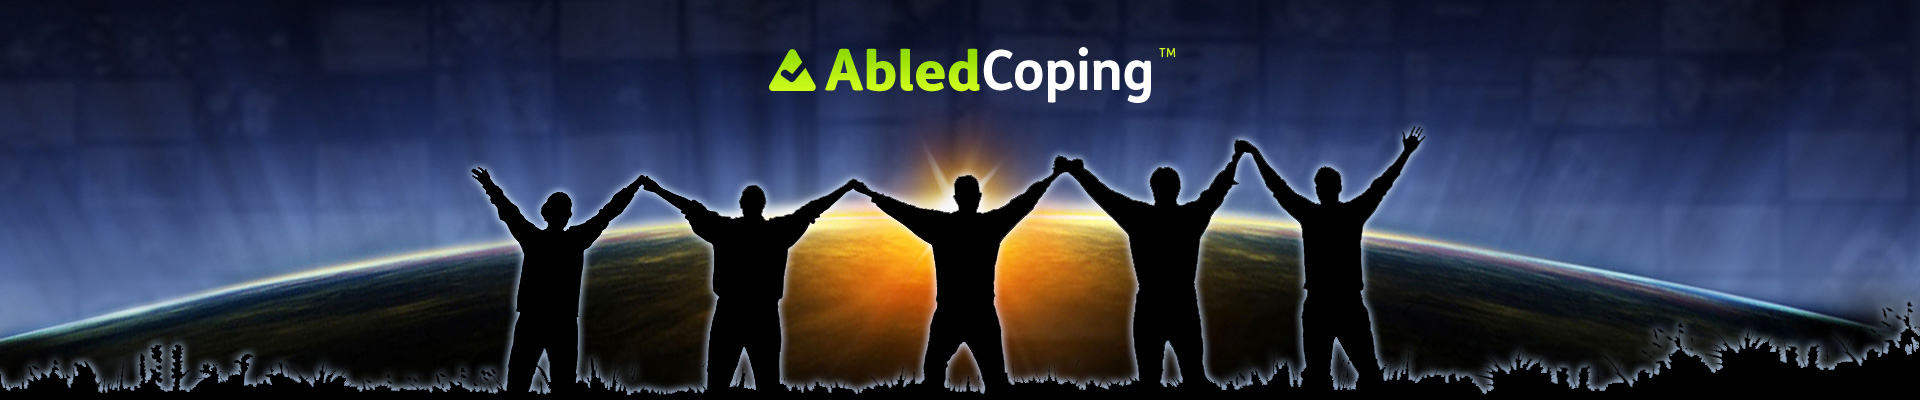 AbledCoping Banner shows a silhouette of 5 people standing side-by-side with upraised linked hands against a glowing yellow-orange sunrise seen over the curve of the Earth from space with the AbledCoping logo at the top center of the banner.